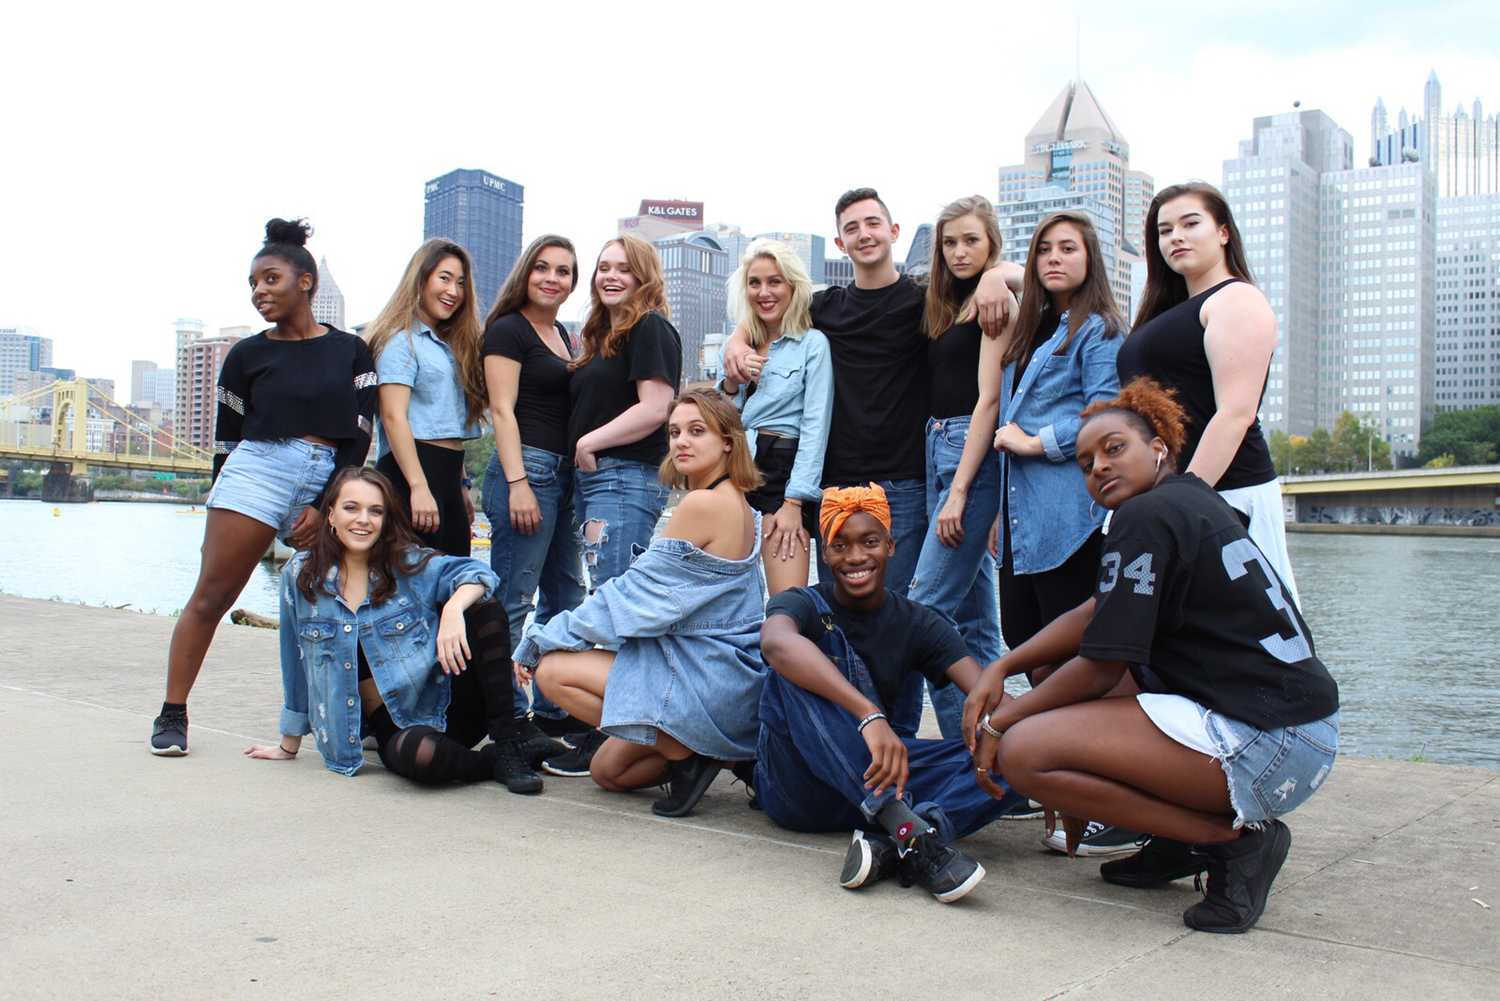 The hip-hop ensemble Controlled Chaos poses in black and denim outfits for a photoshoot. The group currently has 10 full-time members. (Photo courtesy of Mia Krawczel)